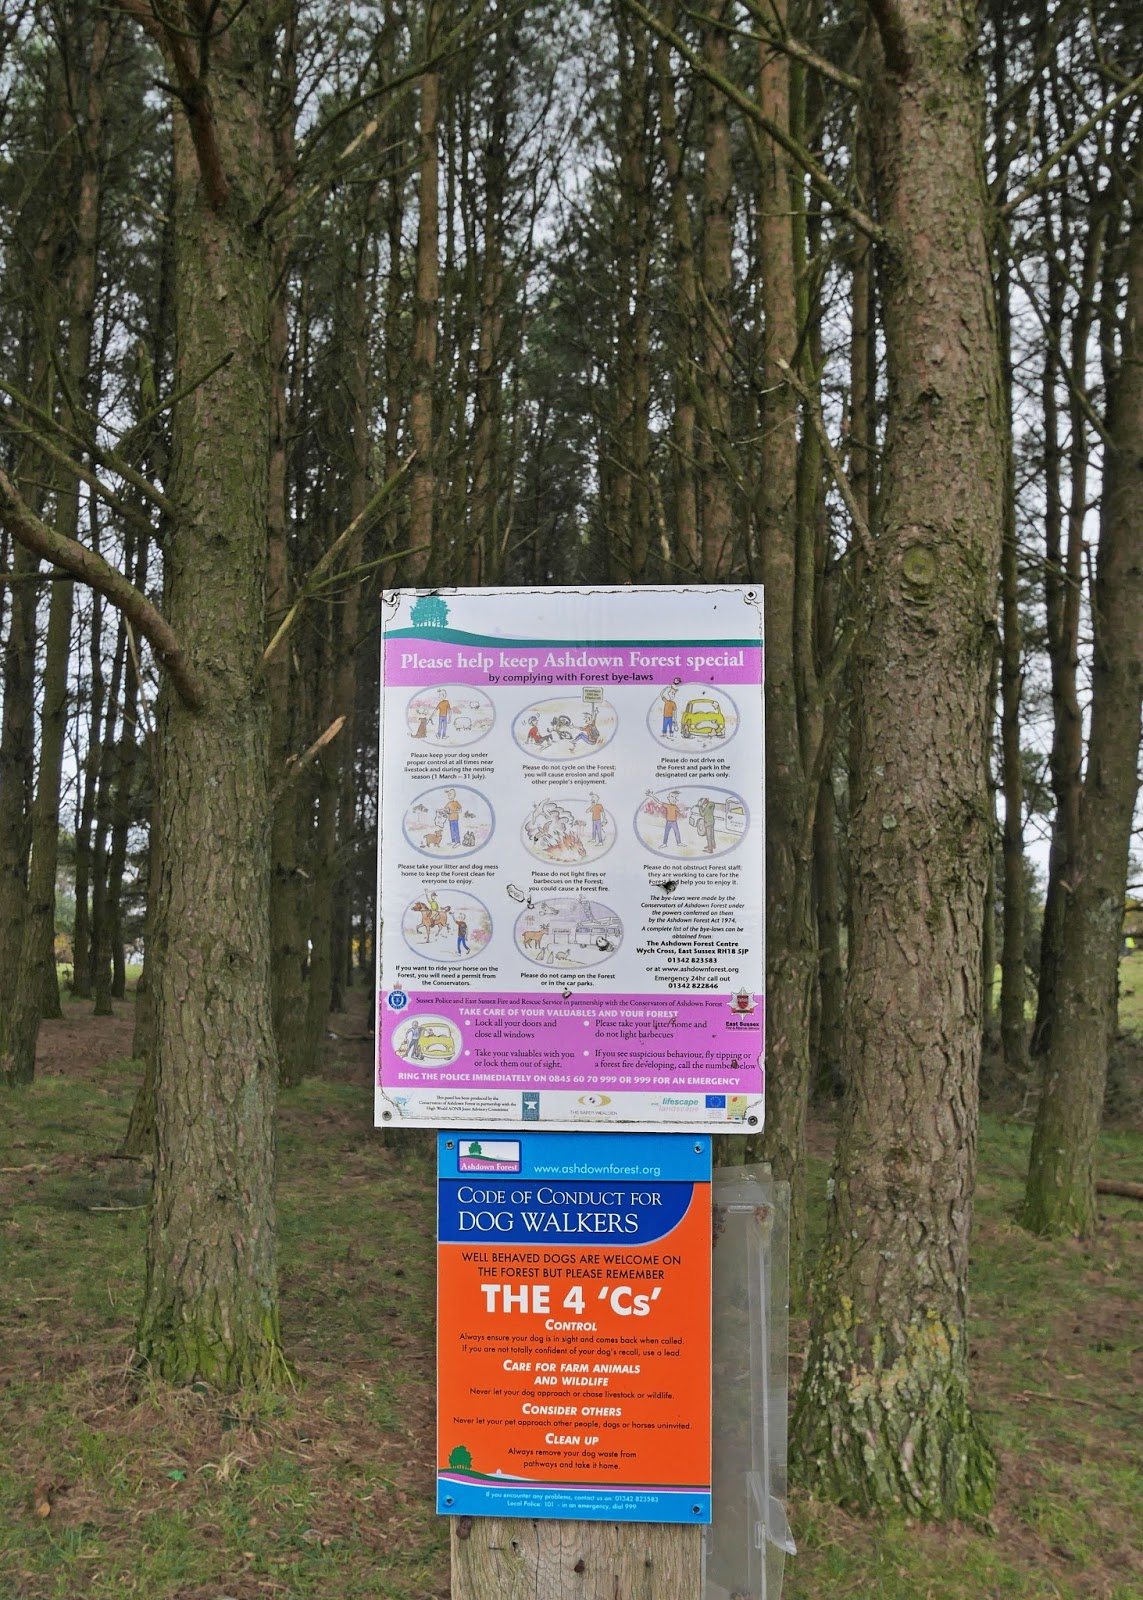 A sign in Ashdown Forest, East Sussex